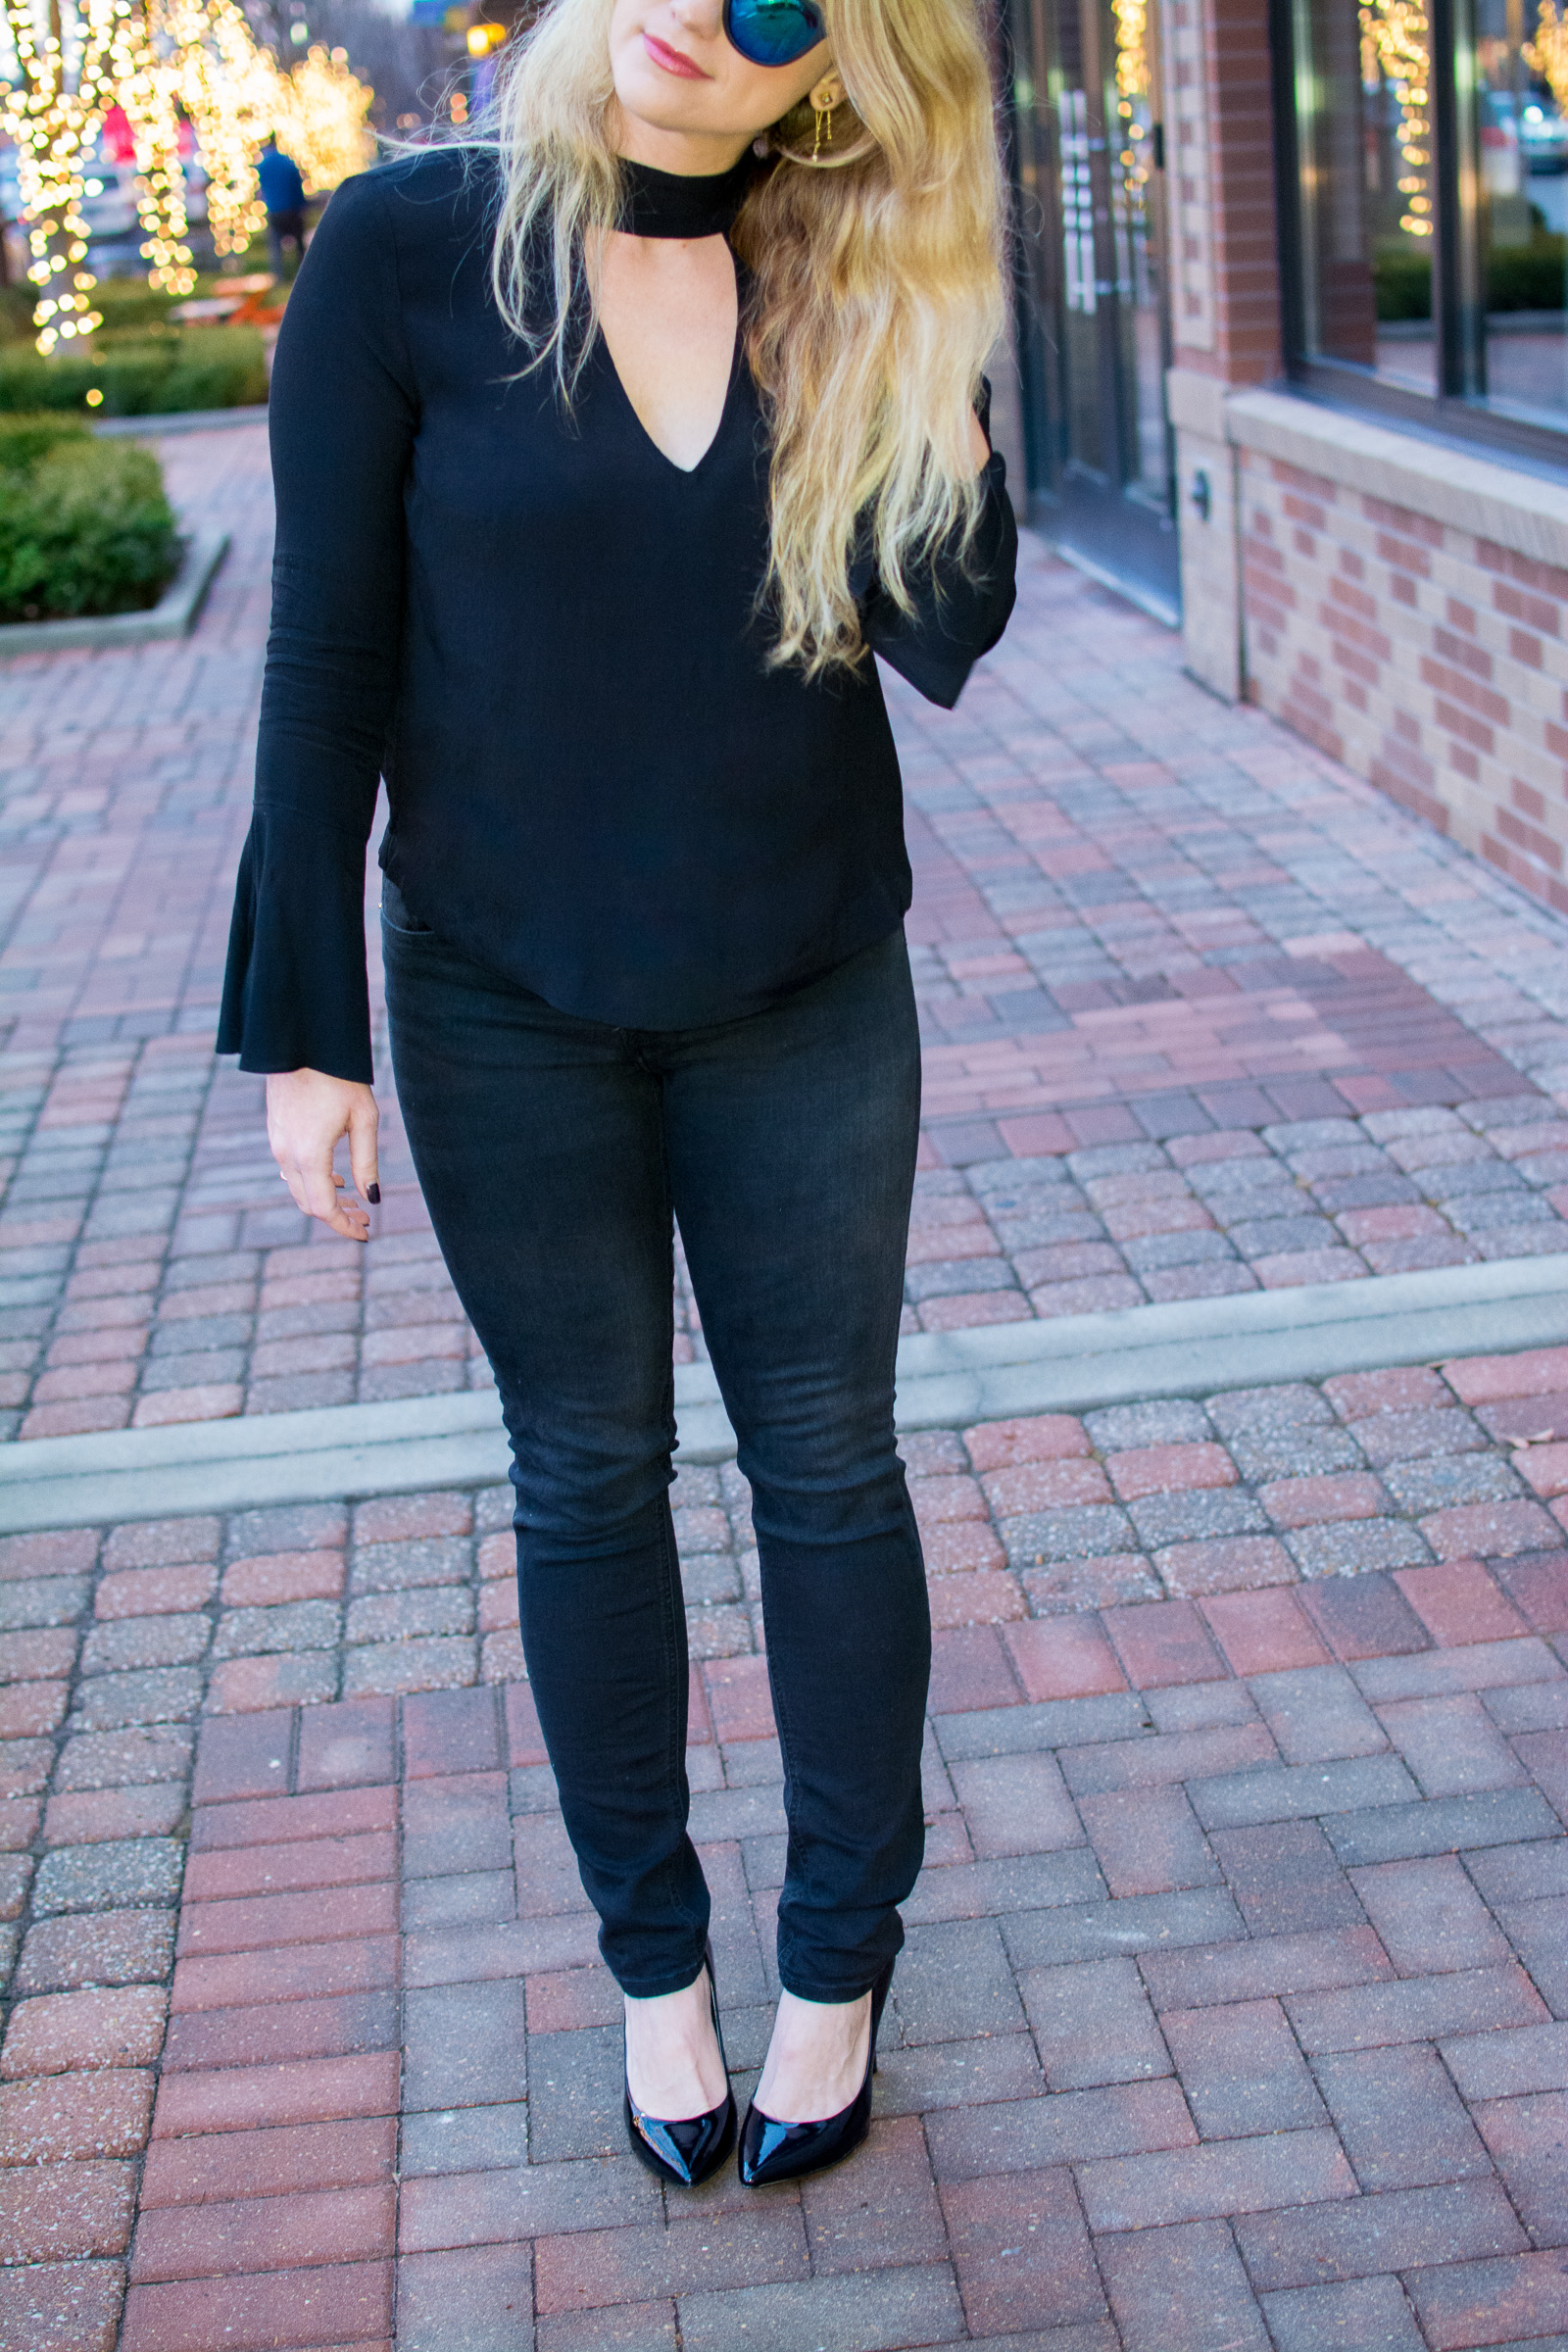 Ashley from LSR In a black choker blouse, black denim, and black pumps